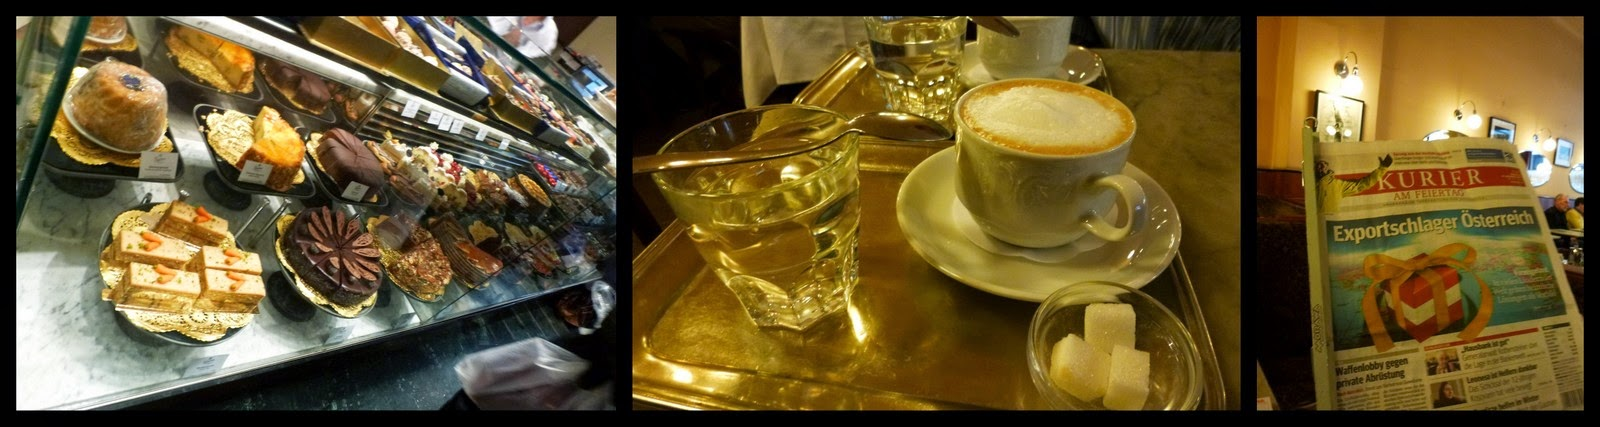 Ryanair Weekend Destination Ideas - Vienna - Cake and Coffee